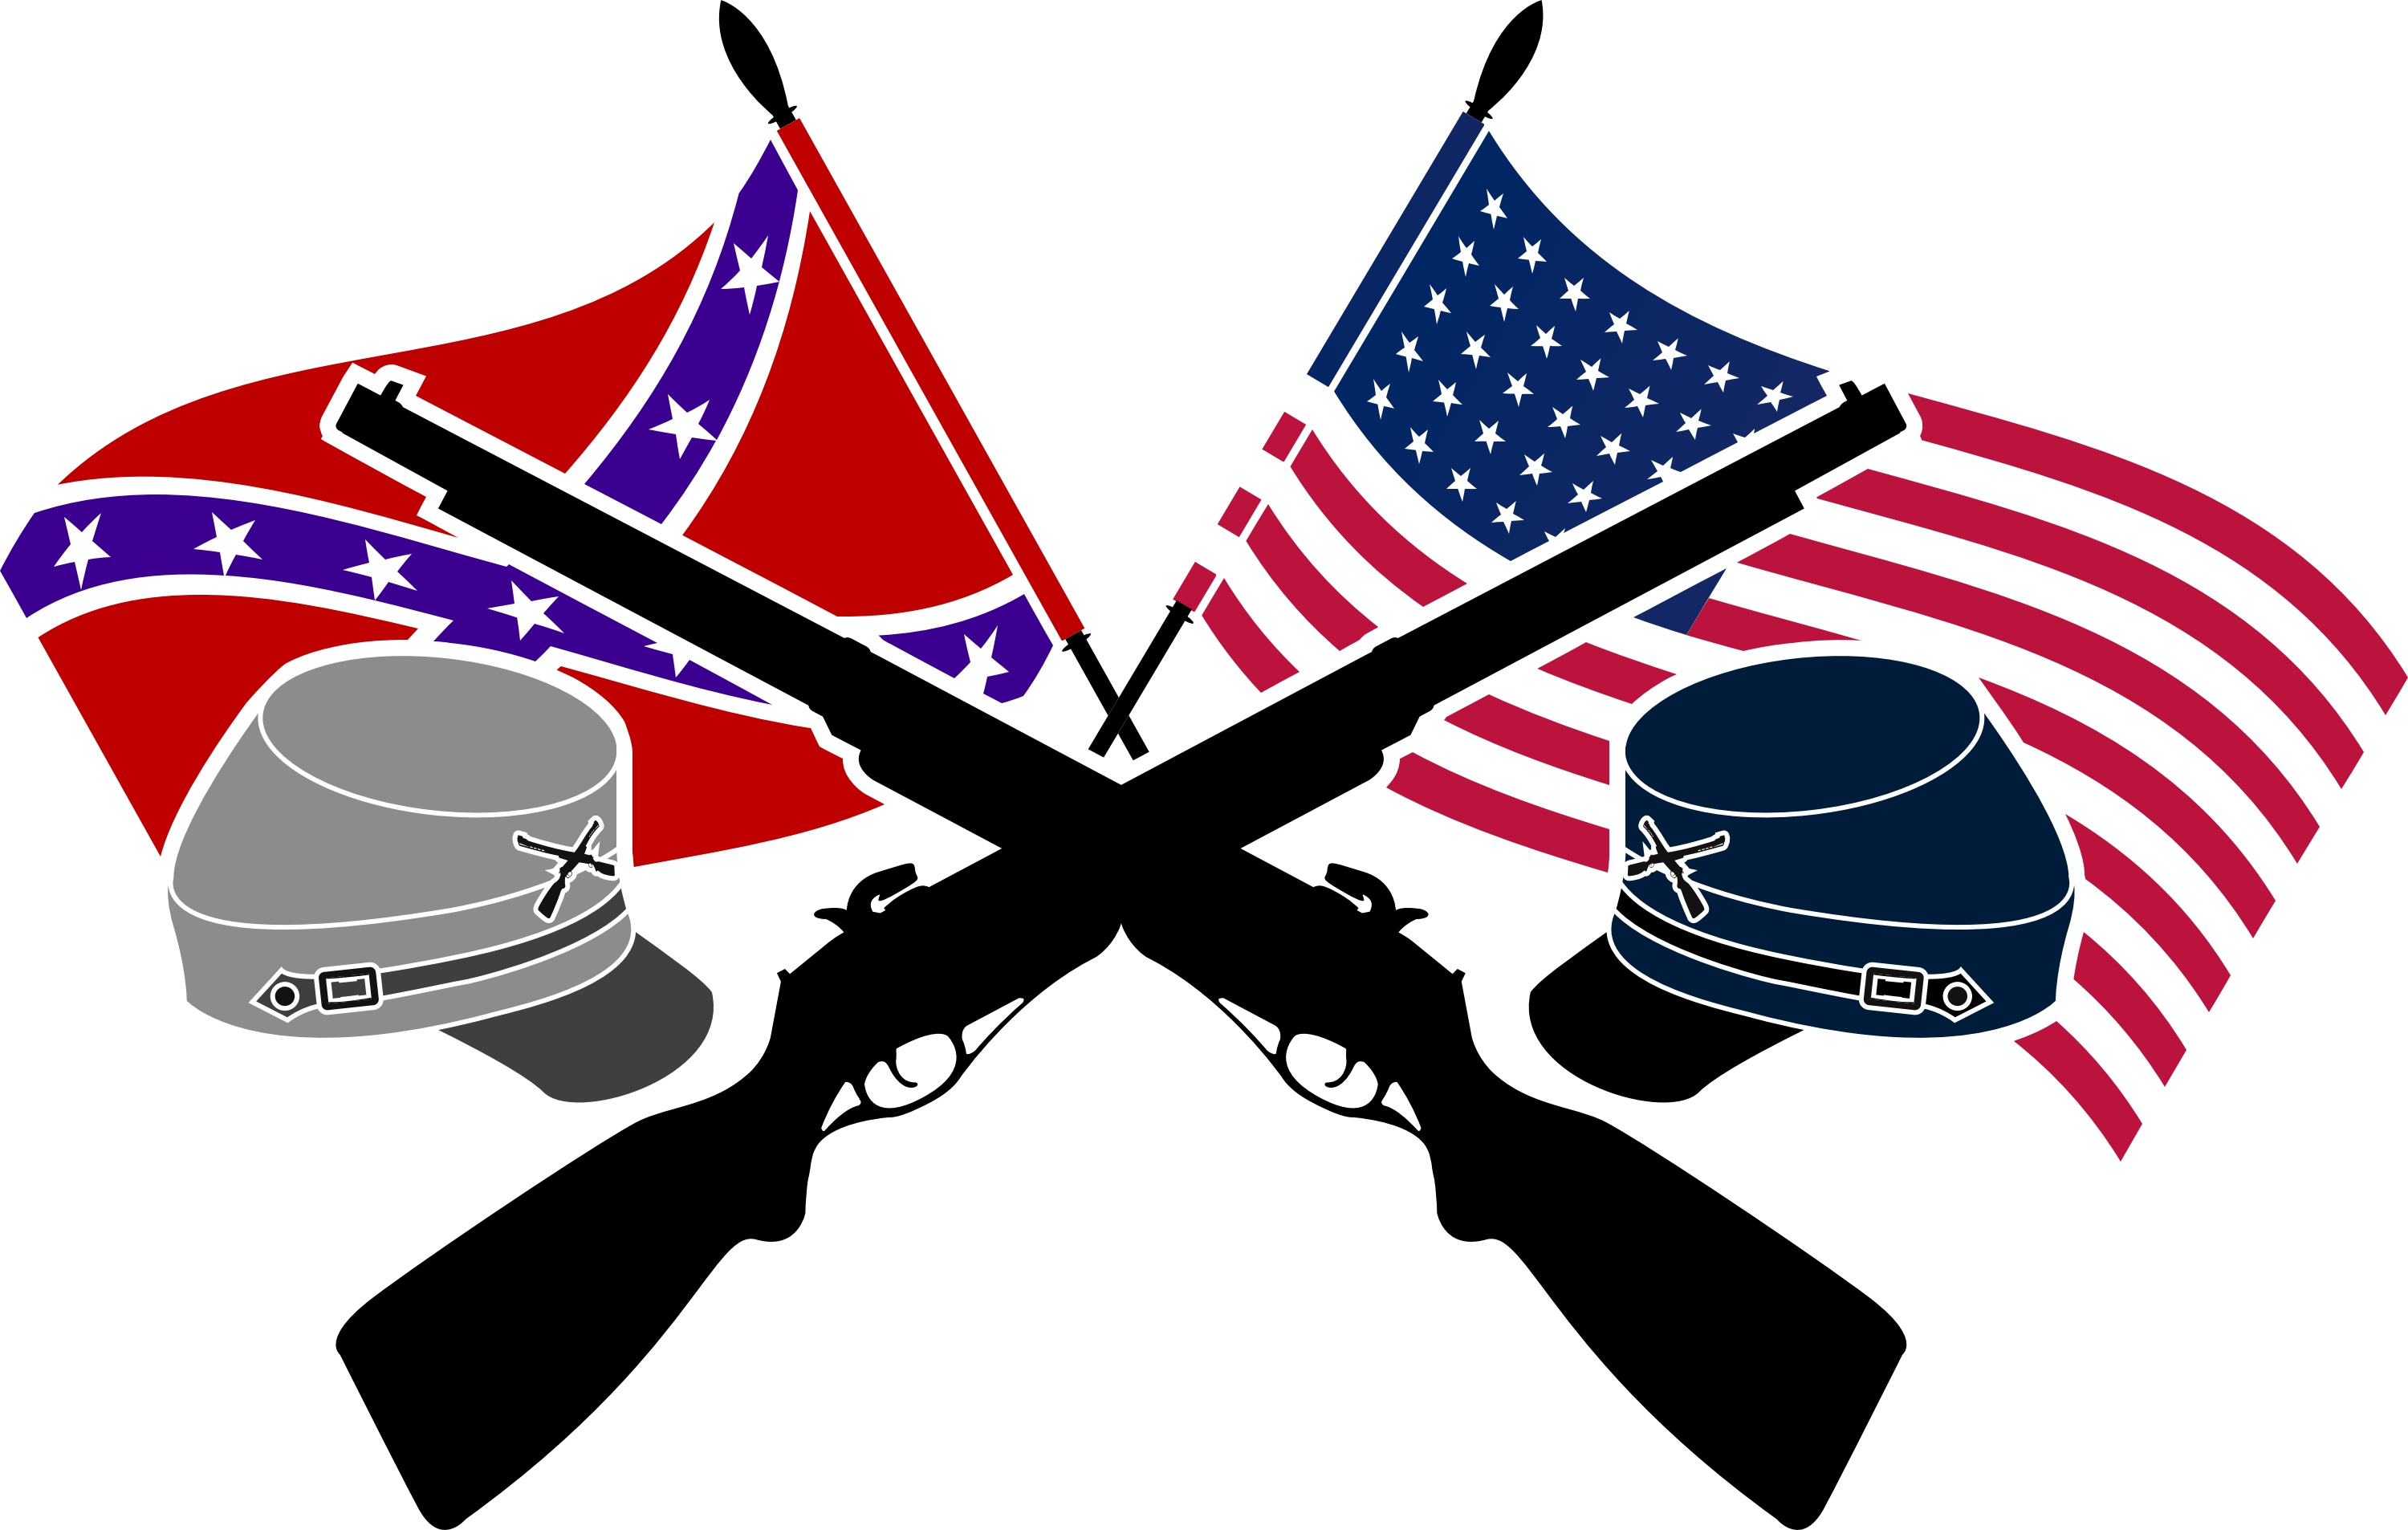 Civil War Clipart & Civil War Clip Art Images.